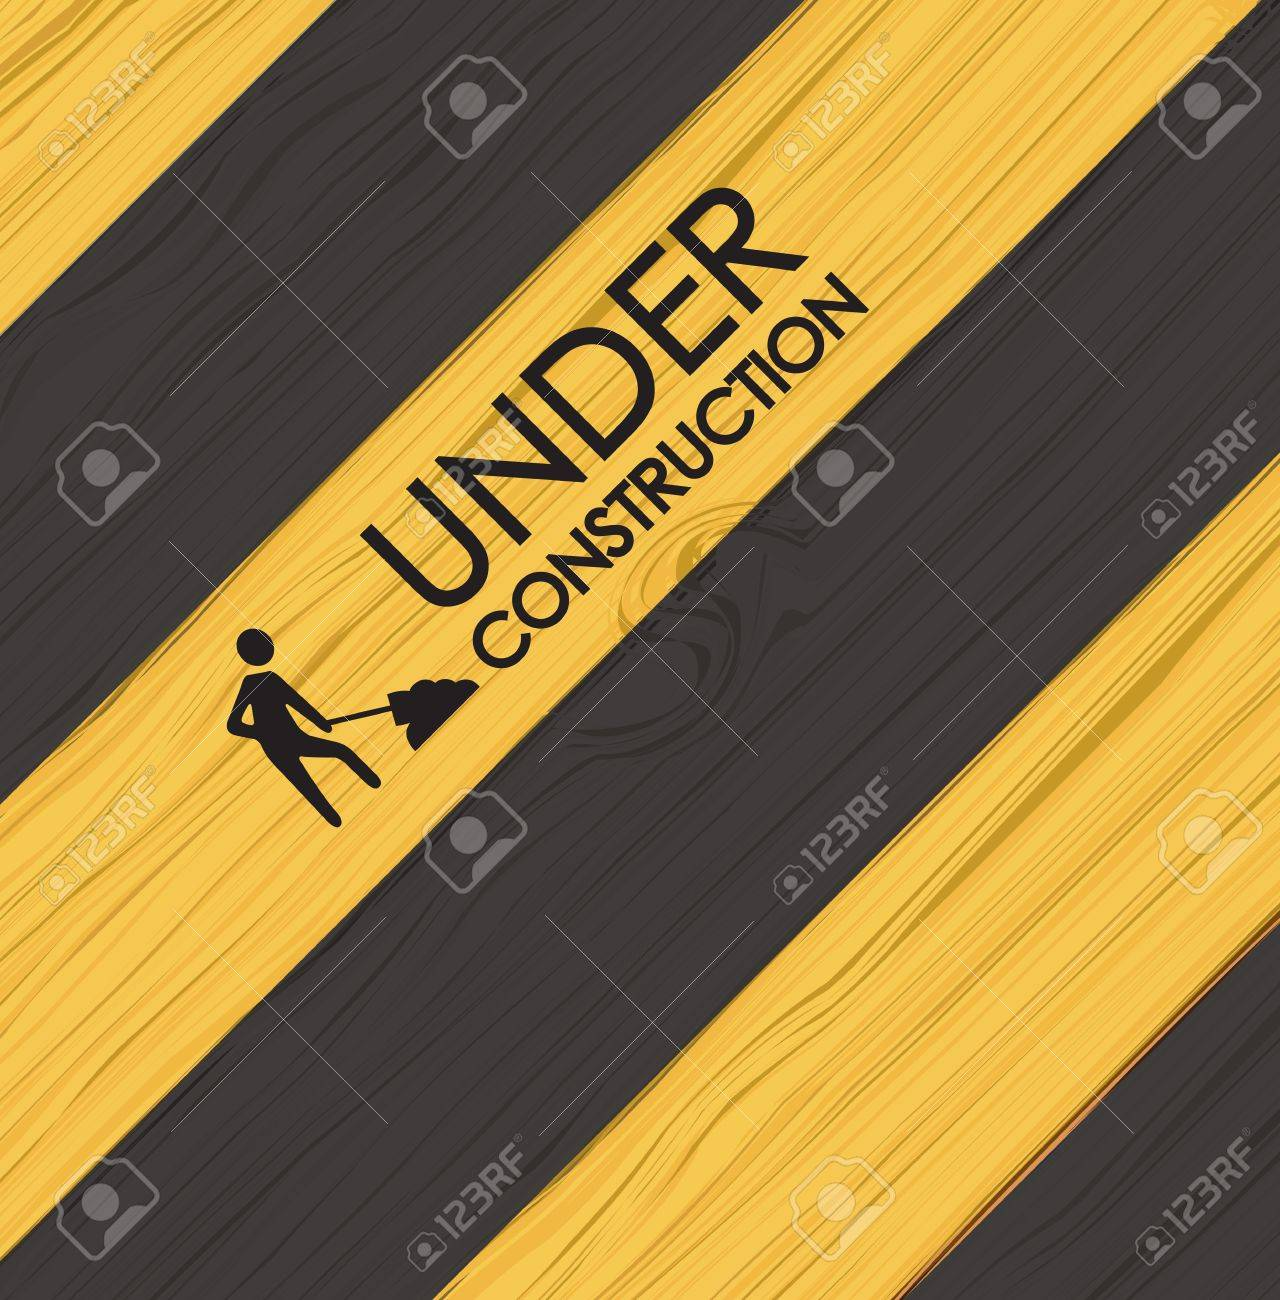 Under construction line over yellow and black background vector illustration Stock Vector - 19463252